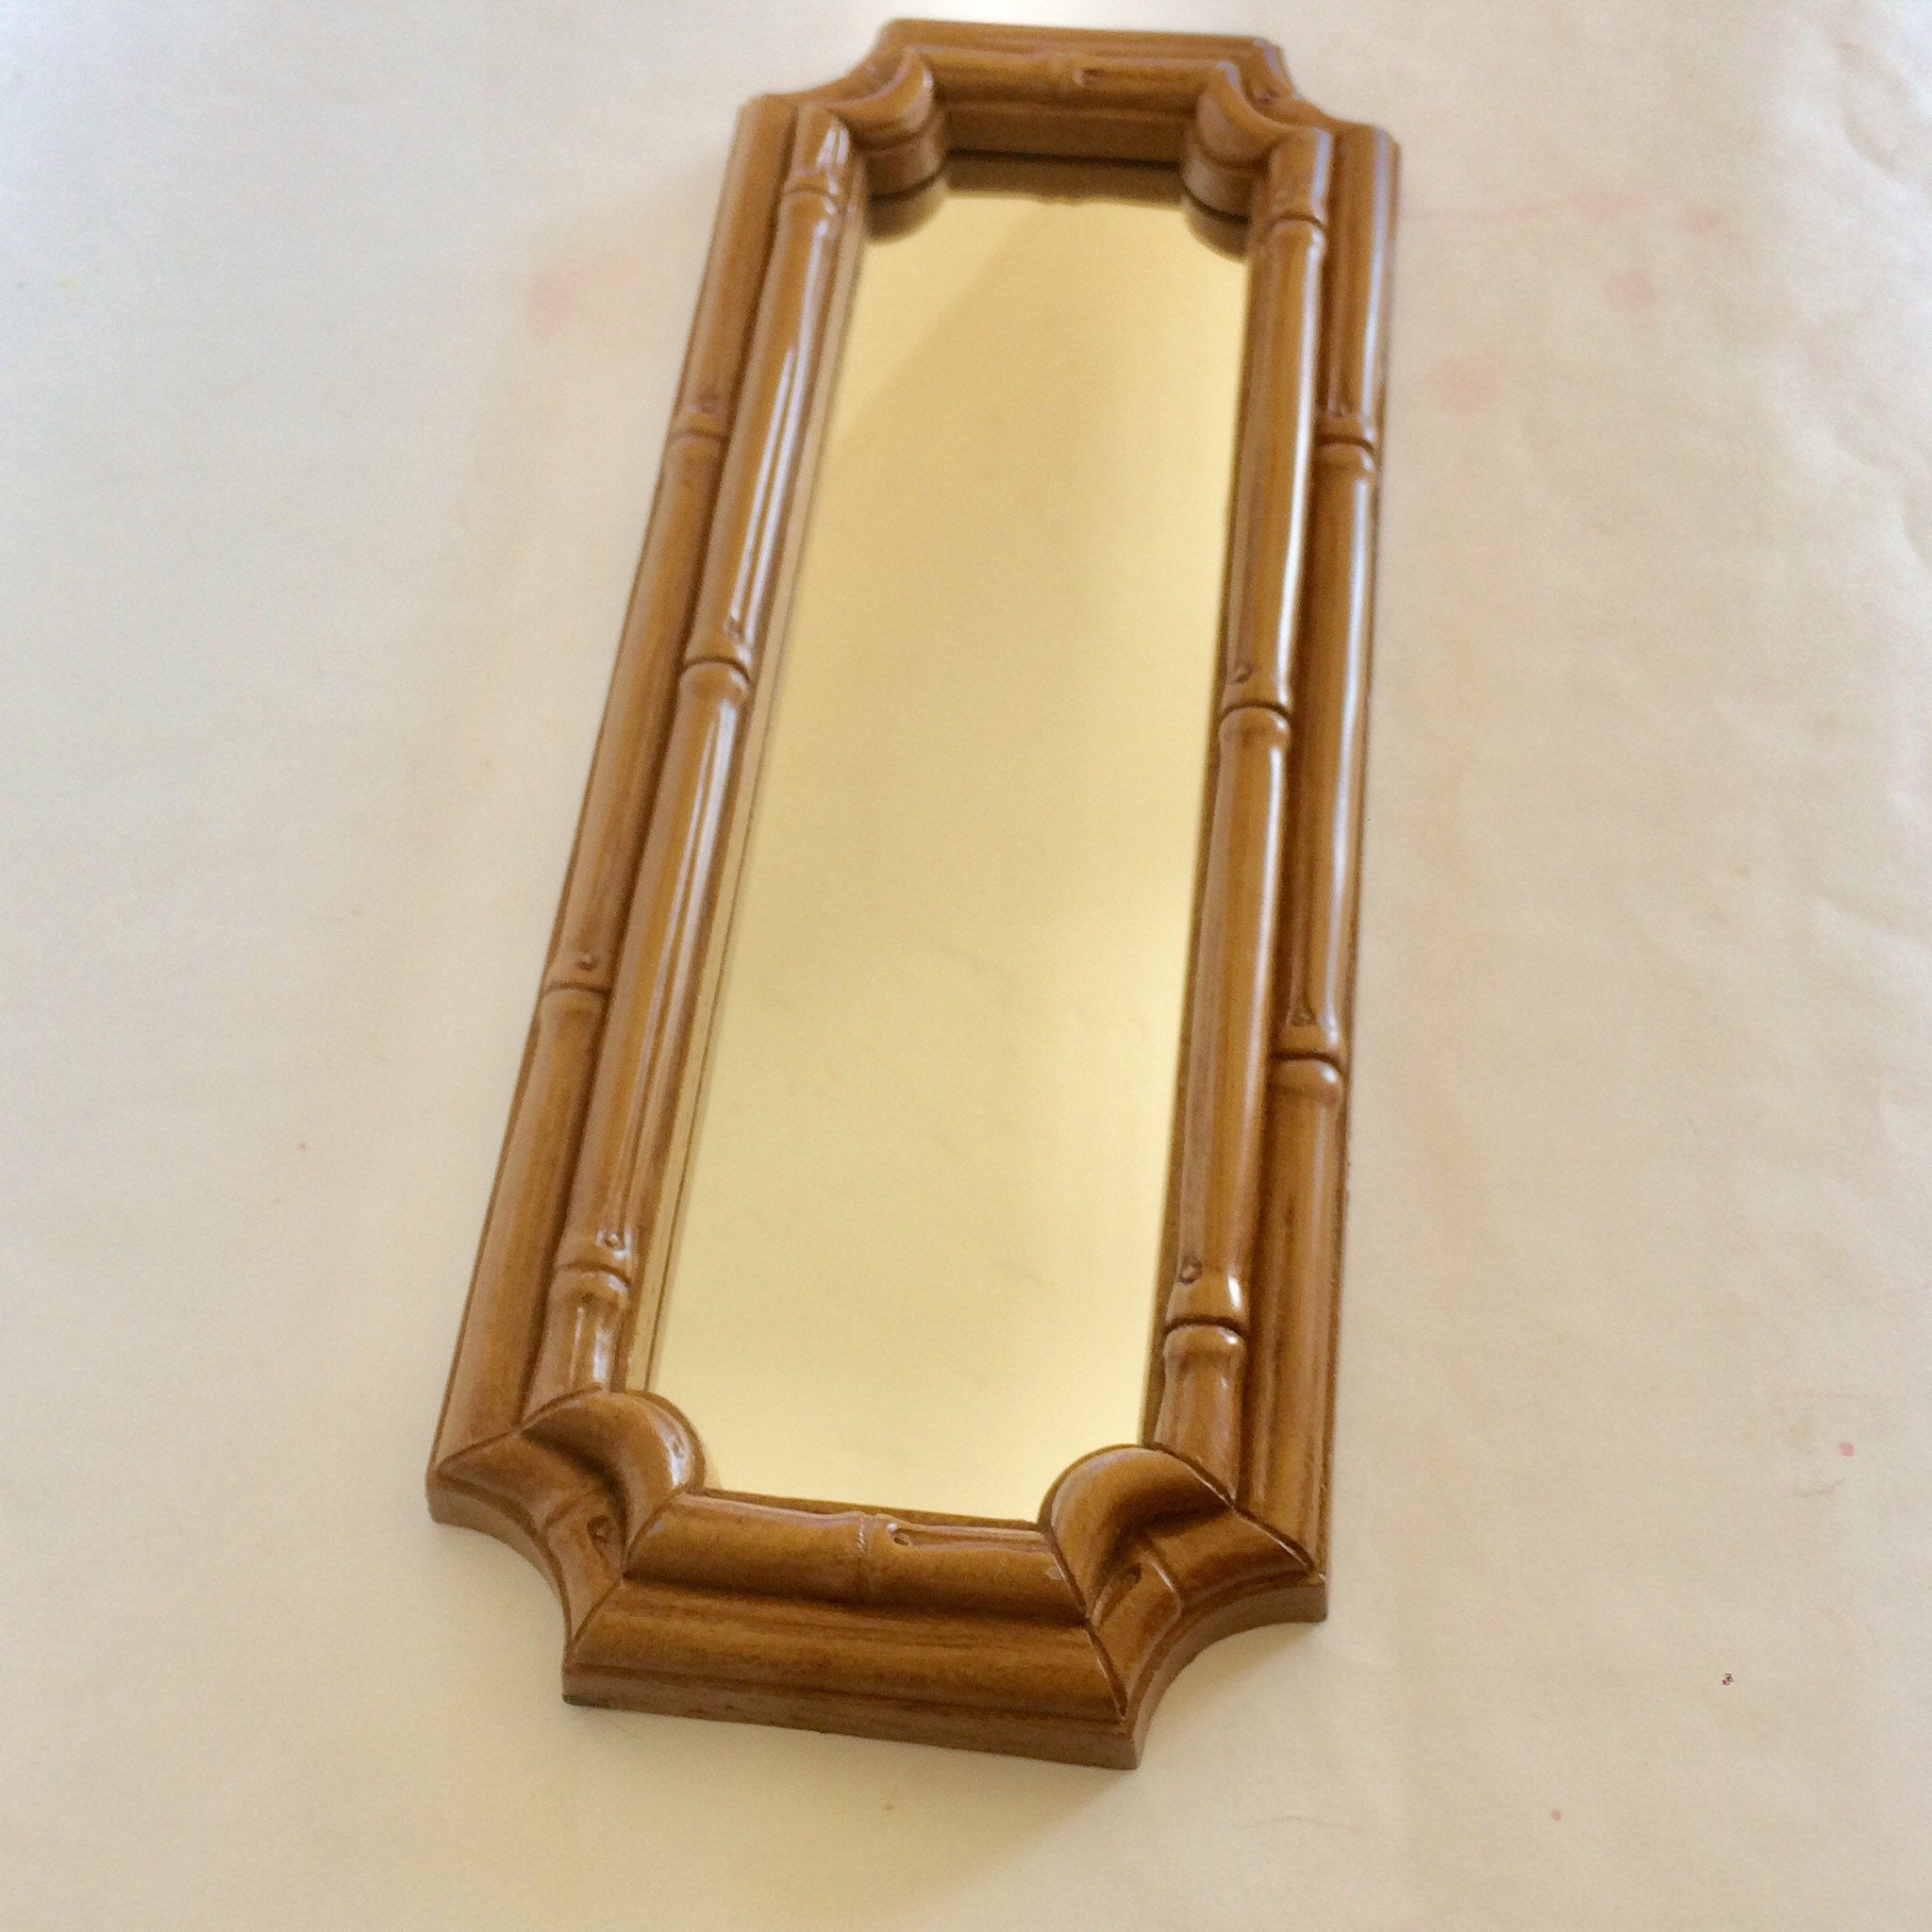 Lightweight Wall Mirrors Pertaining To Most Recently Released Vintage Tiki Mirror Narrow Wall Mirror Classic Hawaiian Wall Decor Faux  Wood Rantan Bamboo Mirror Light Weight Mirror Wall Mirror (View 9 of 20)